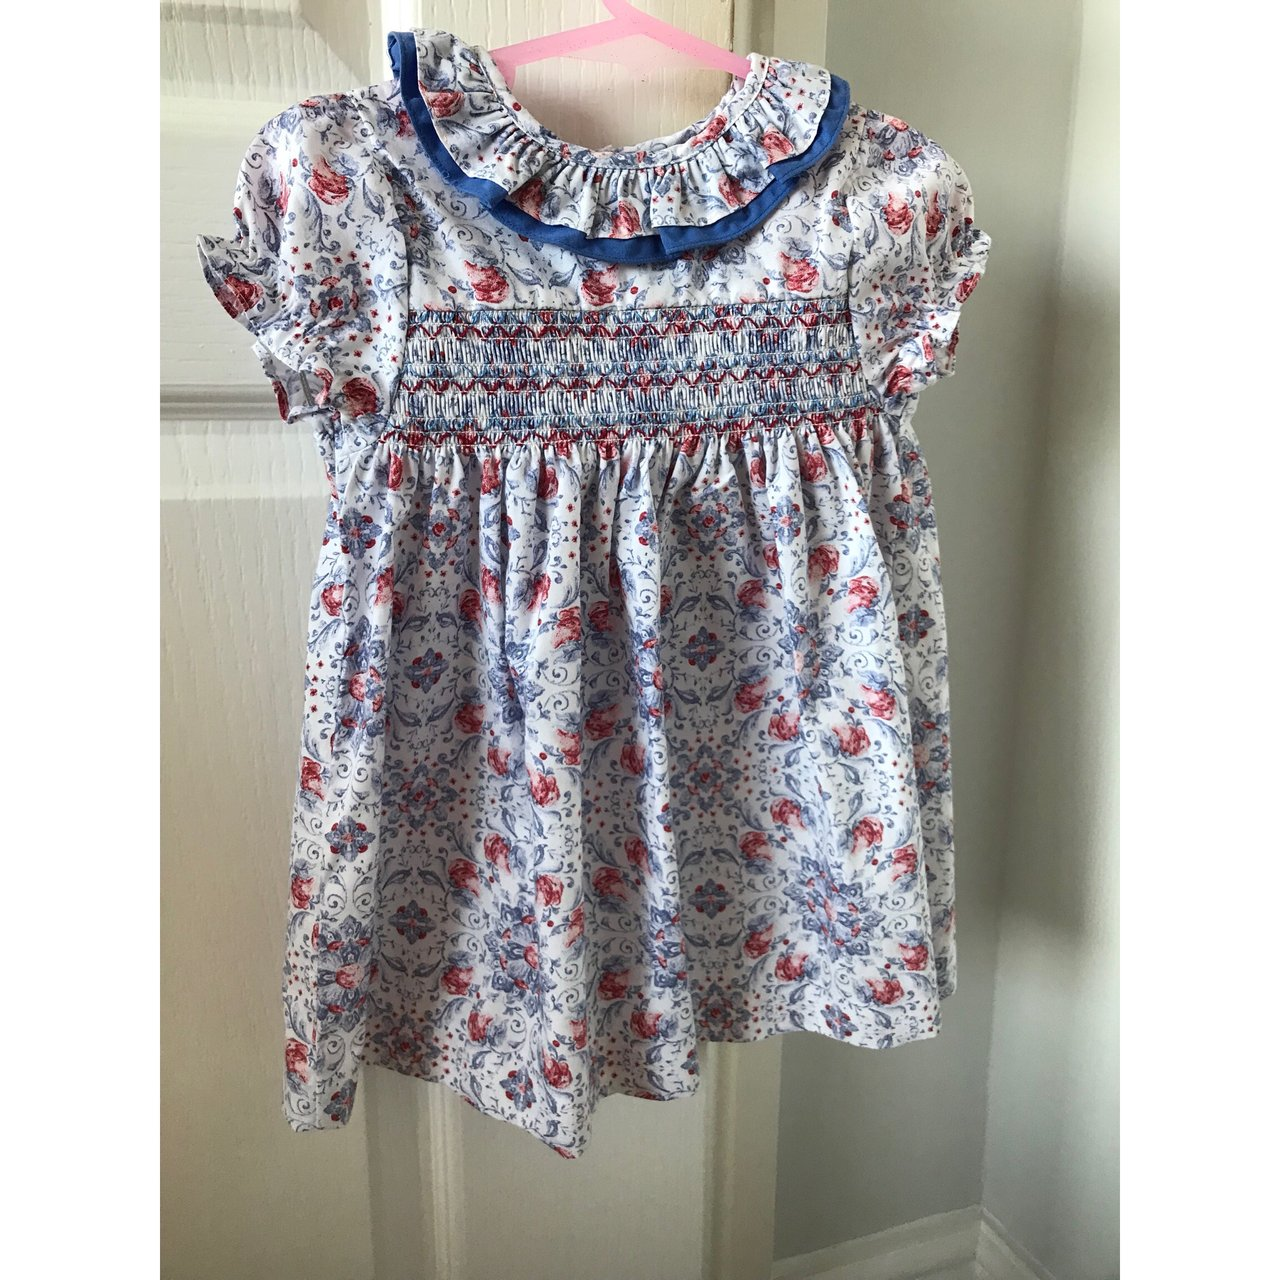 8c7e9be1fd5 Iyla s Wardrobe s Shop - Depop